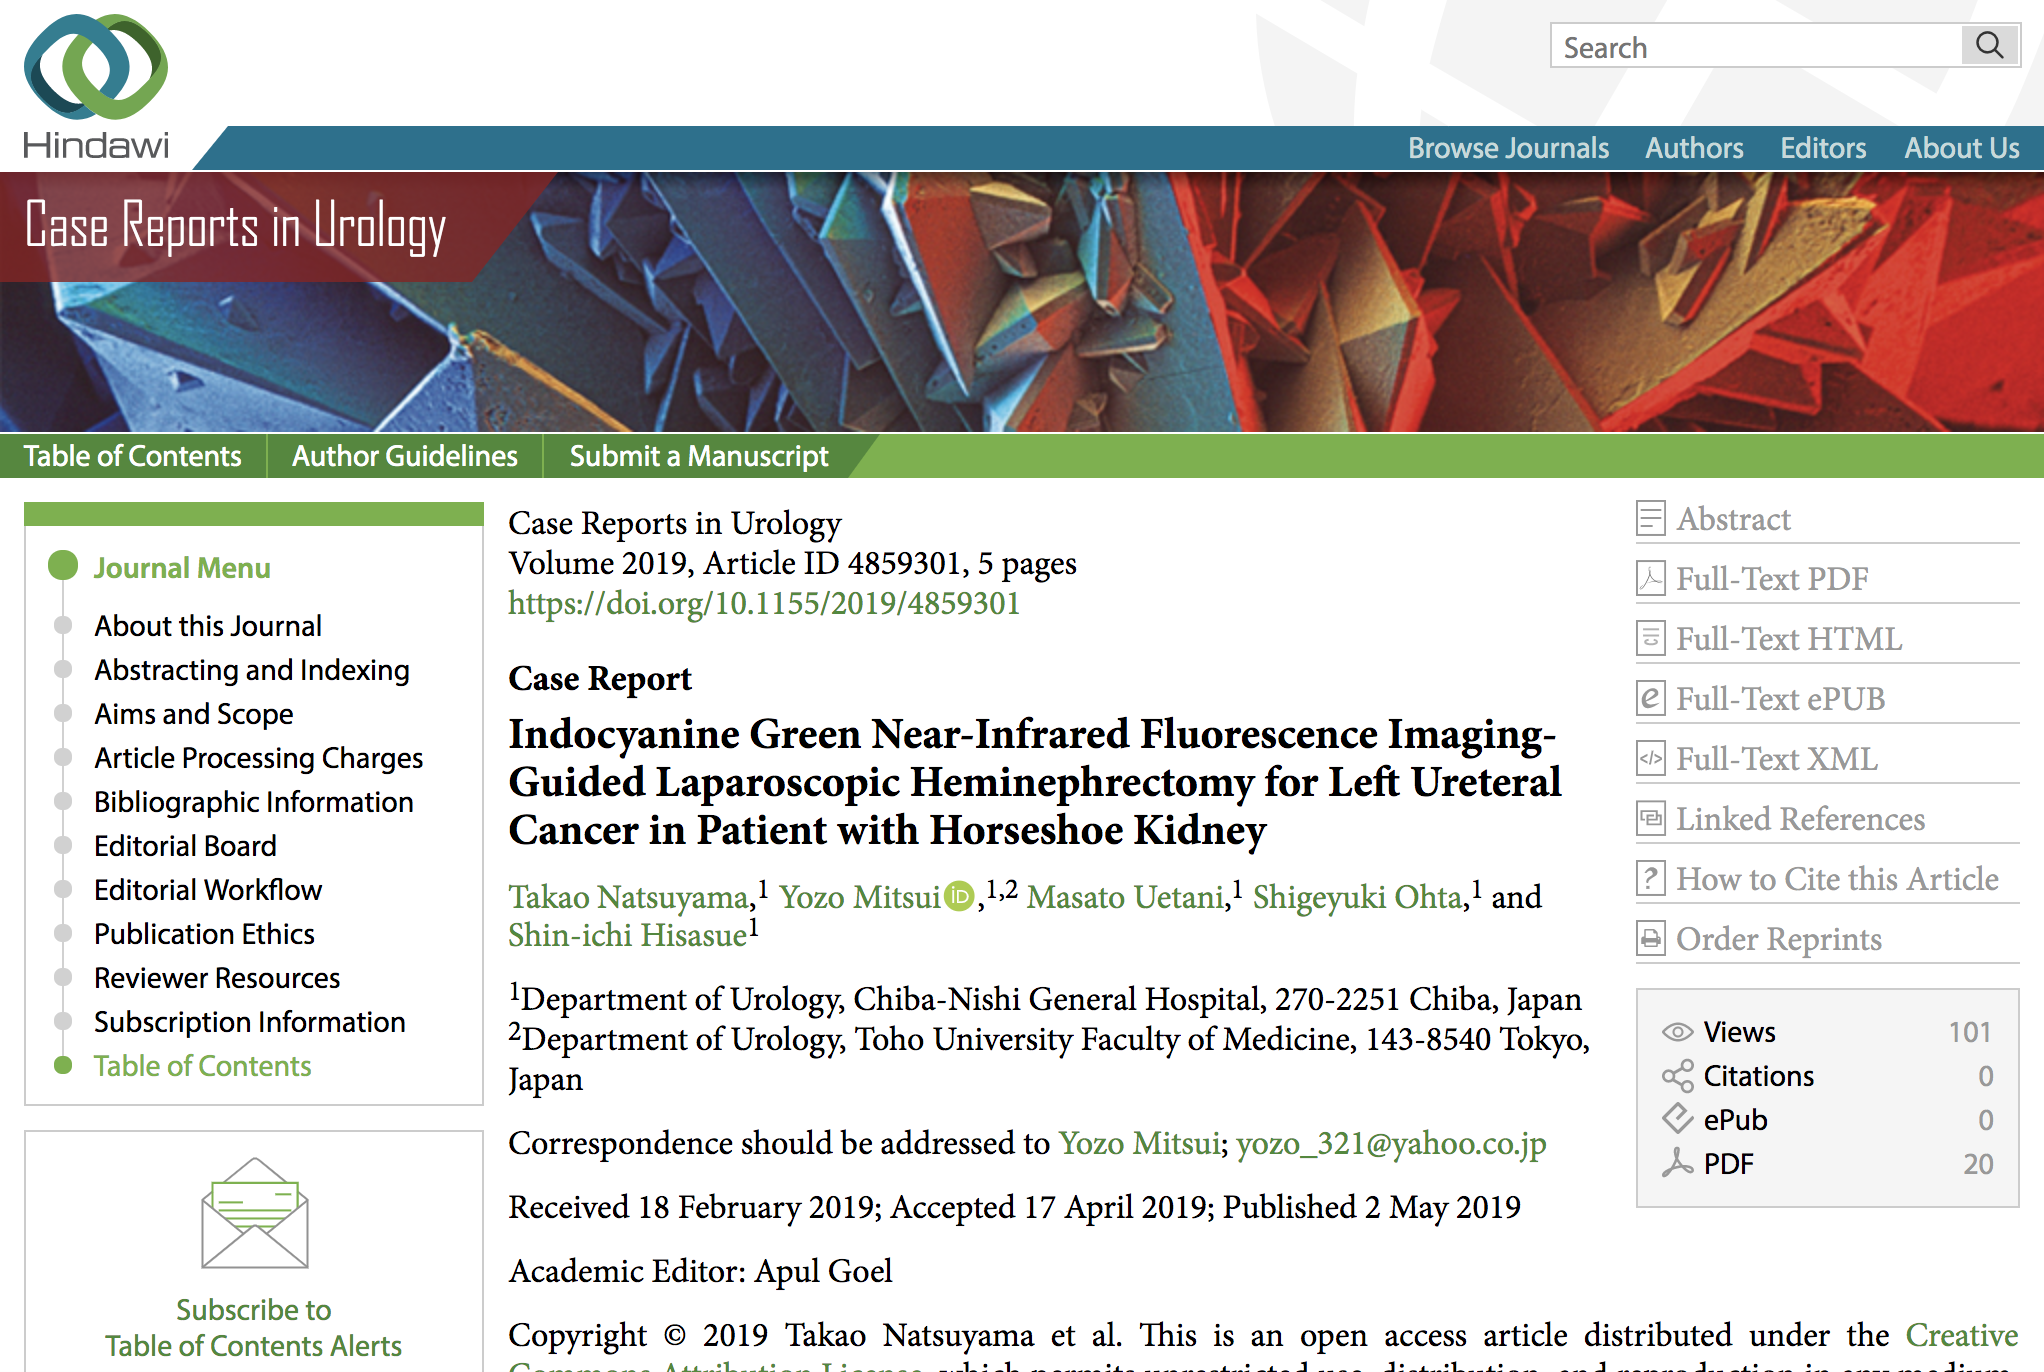 Case Reports in Urology